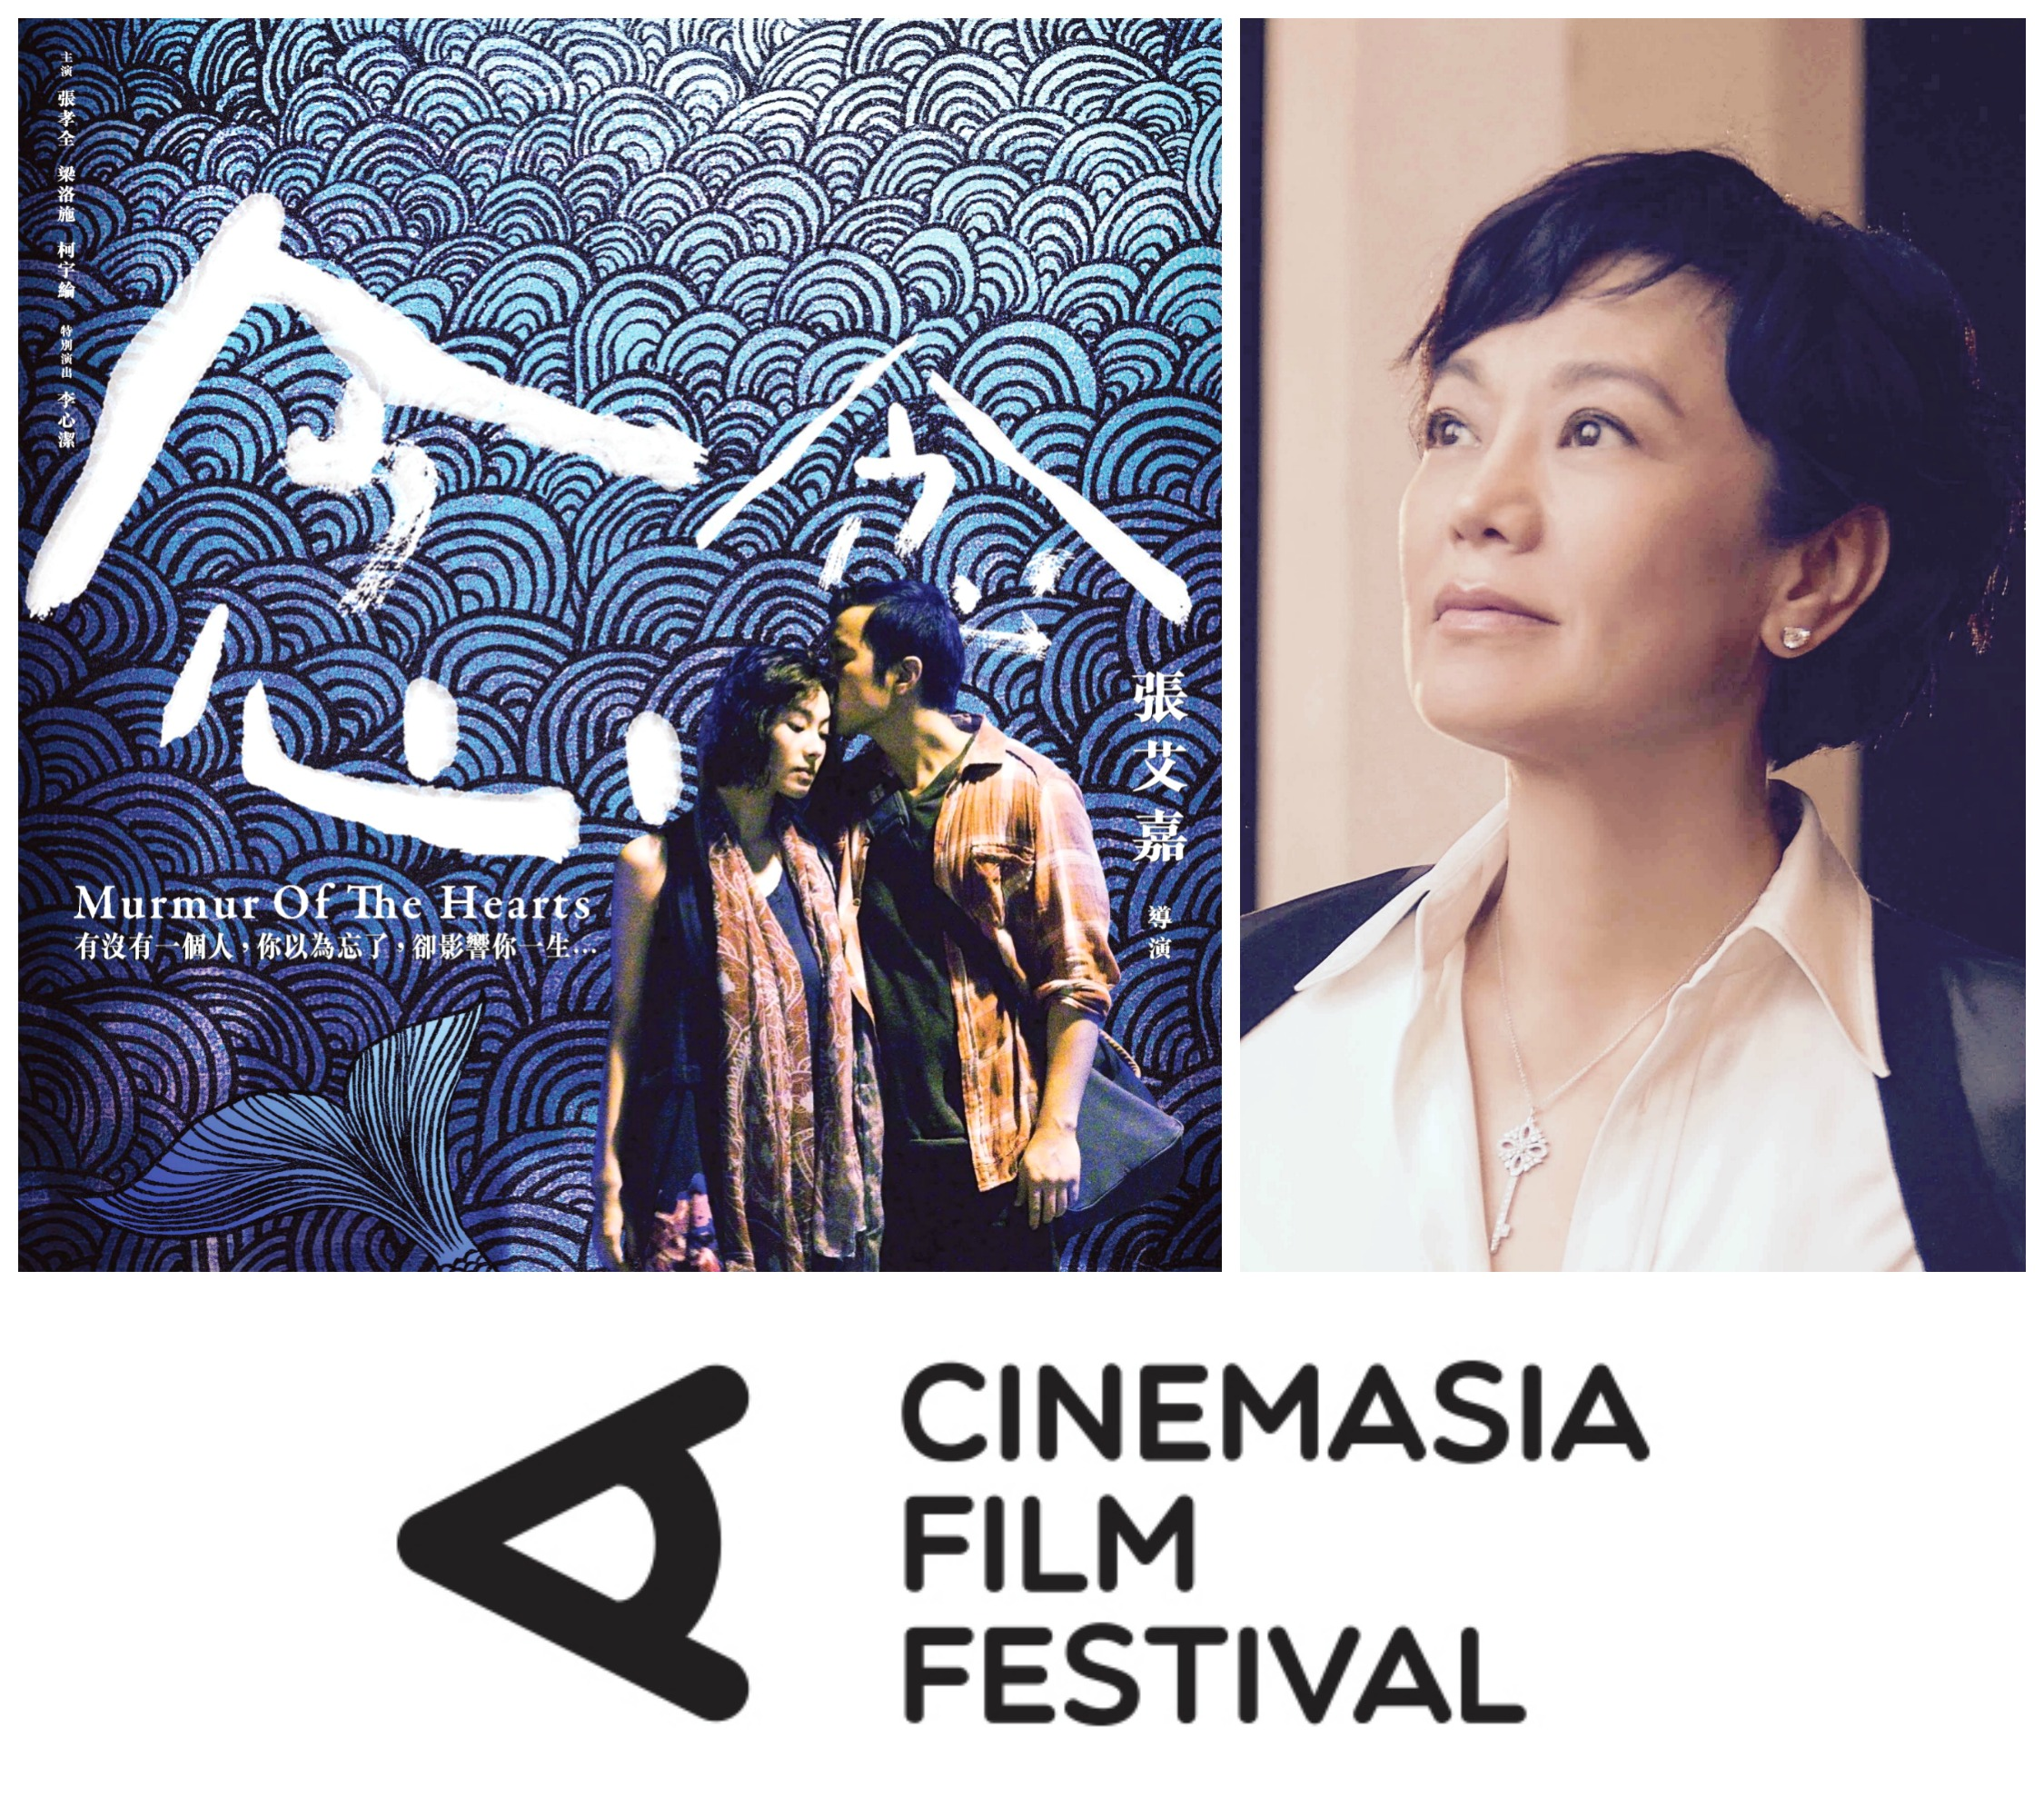 CinemAsia Film Festival_Sylvia Chang